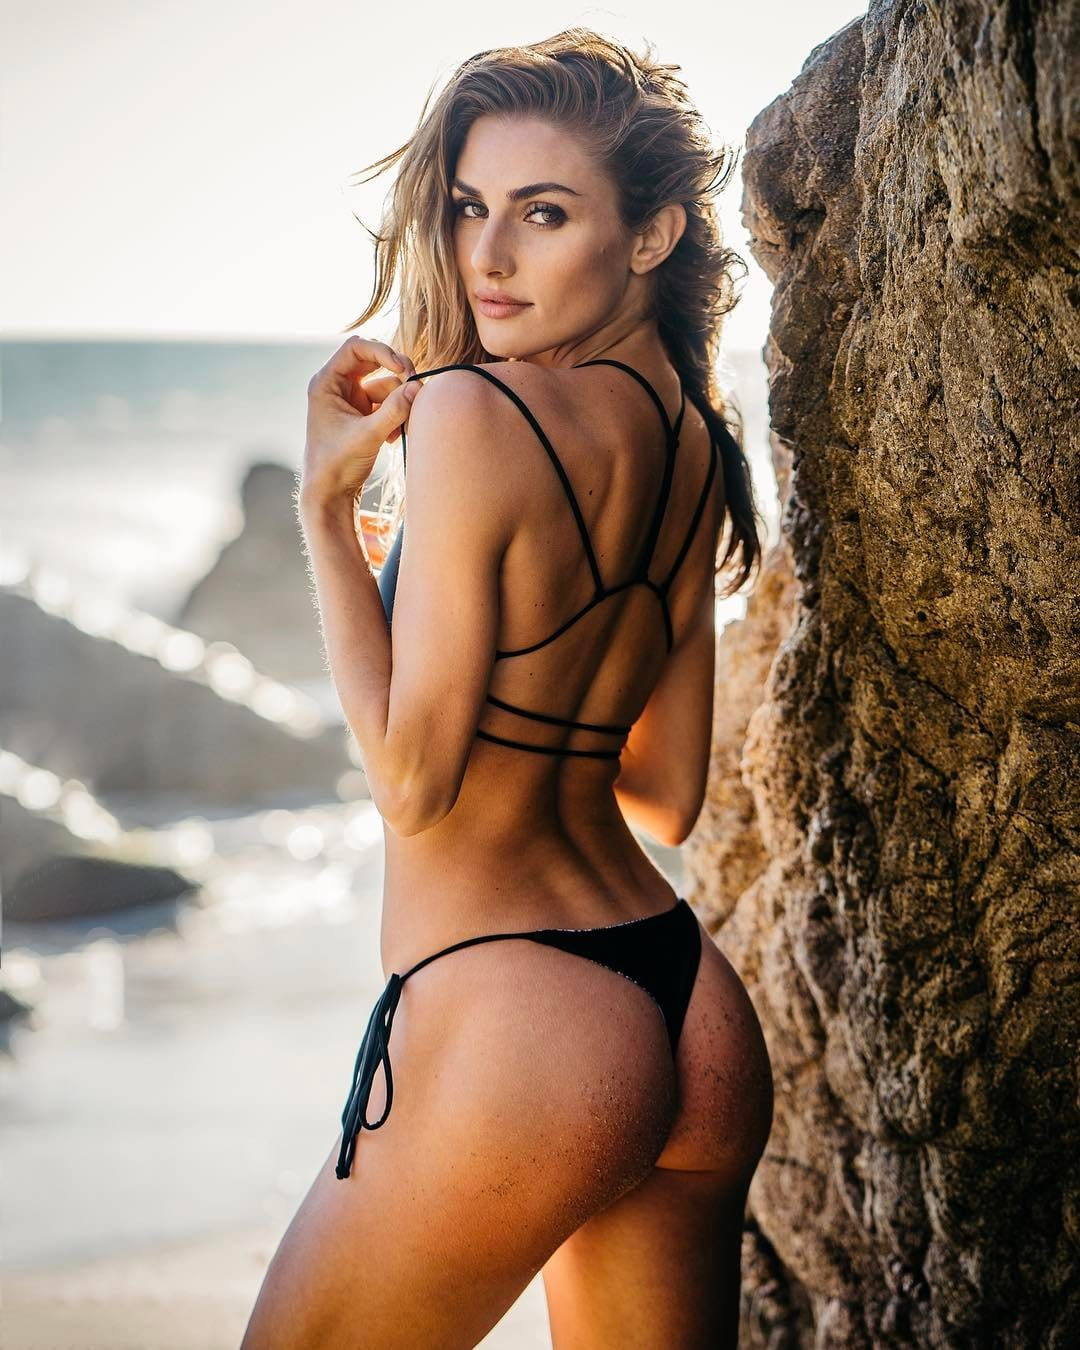 Mackenzie Thoma nudes (75 pictures), fotos Sideboobs, Twitter, butt 2016